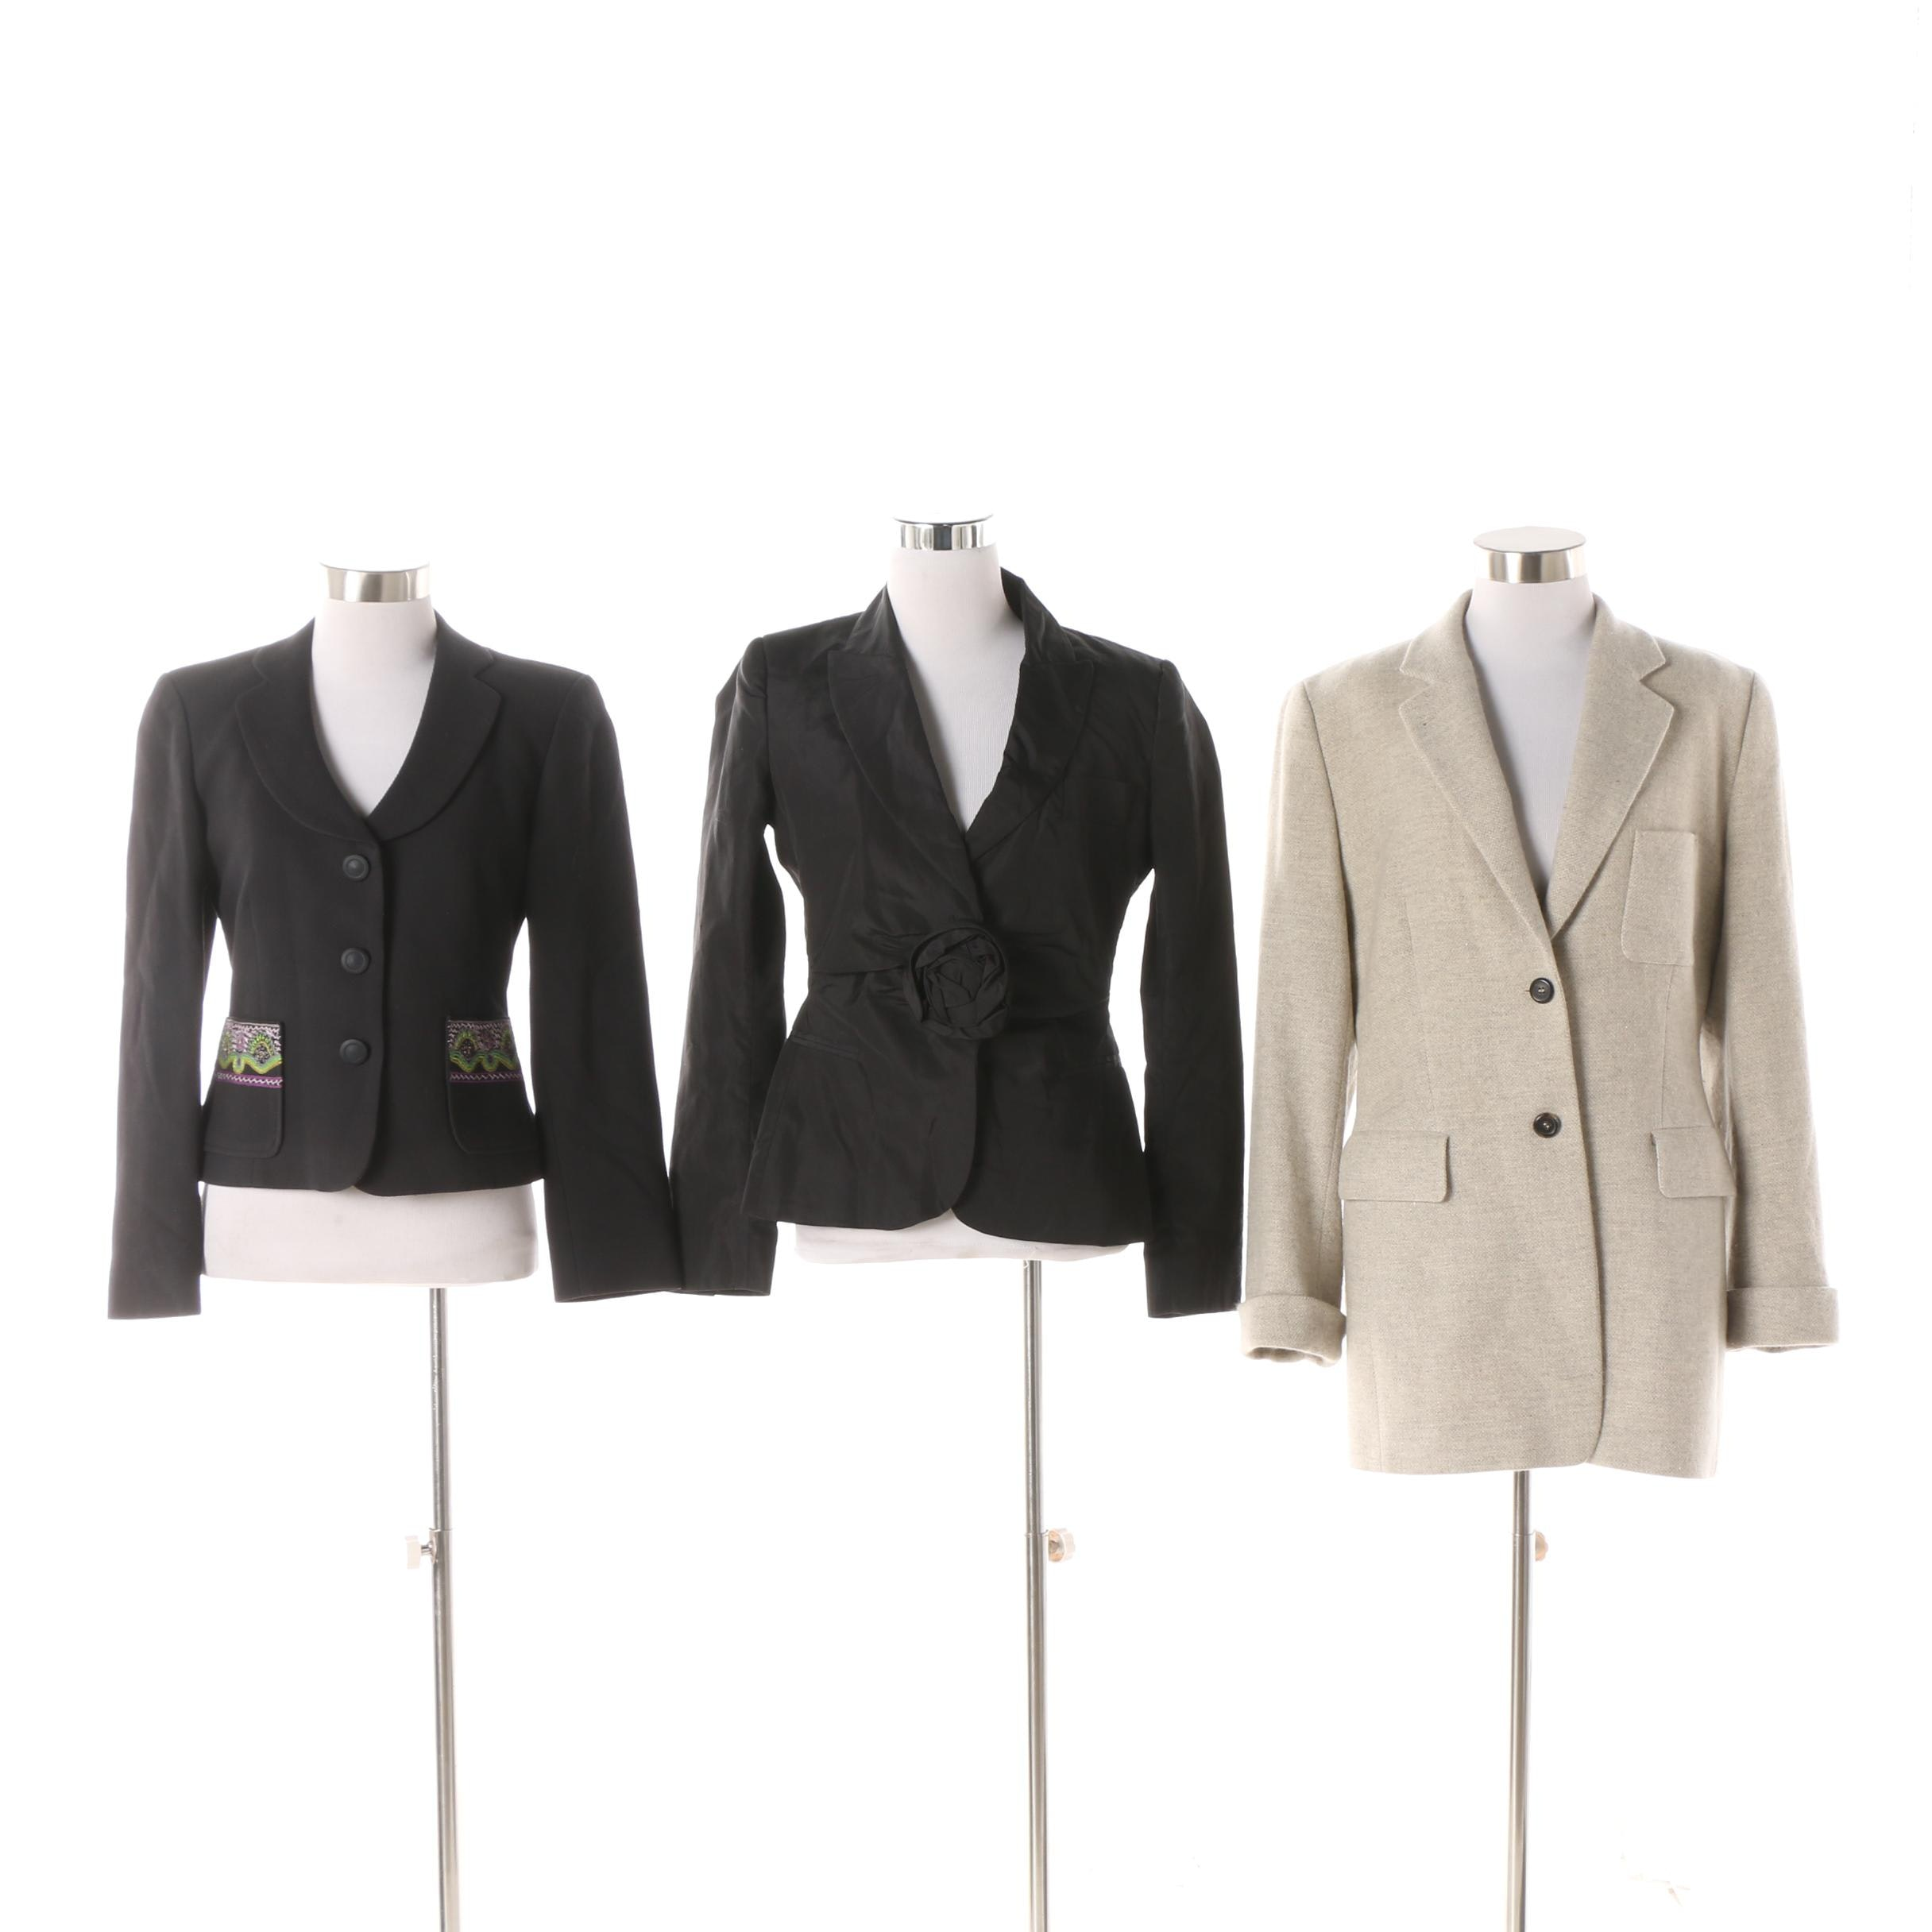 Women's 1990s Jackets including Christian Lacroix and Moschino Cheap and Chic